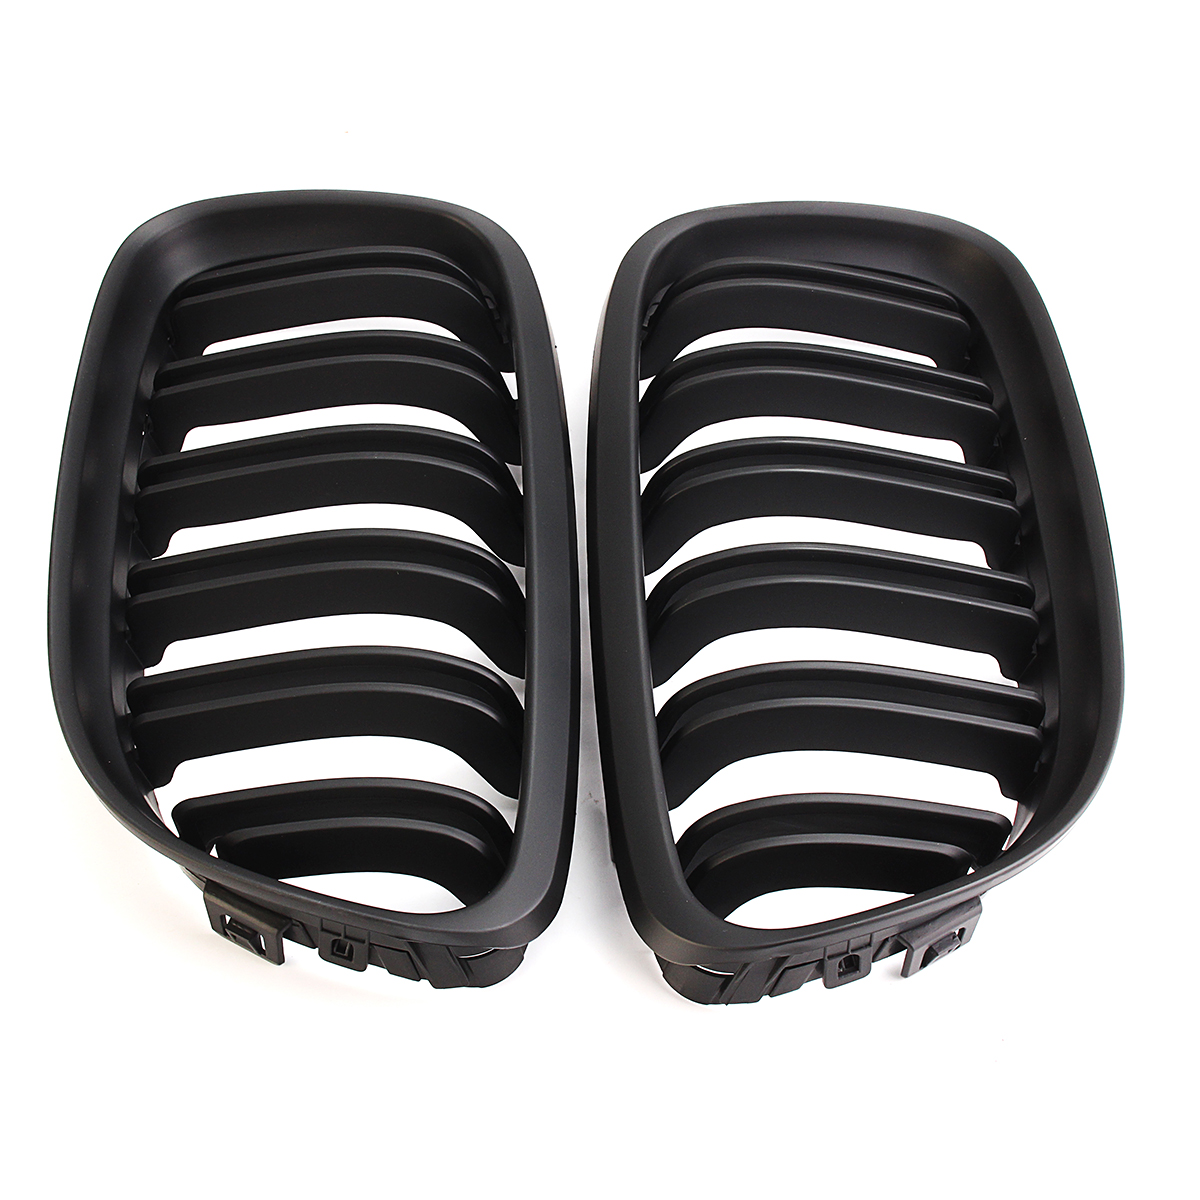 Pair Kidney Front Grille Grill Matt Black For BMW 3 Series E90 E91 2009-2011